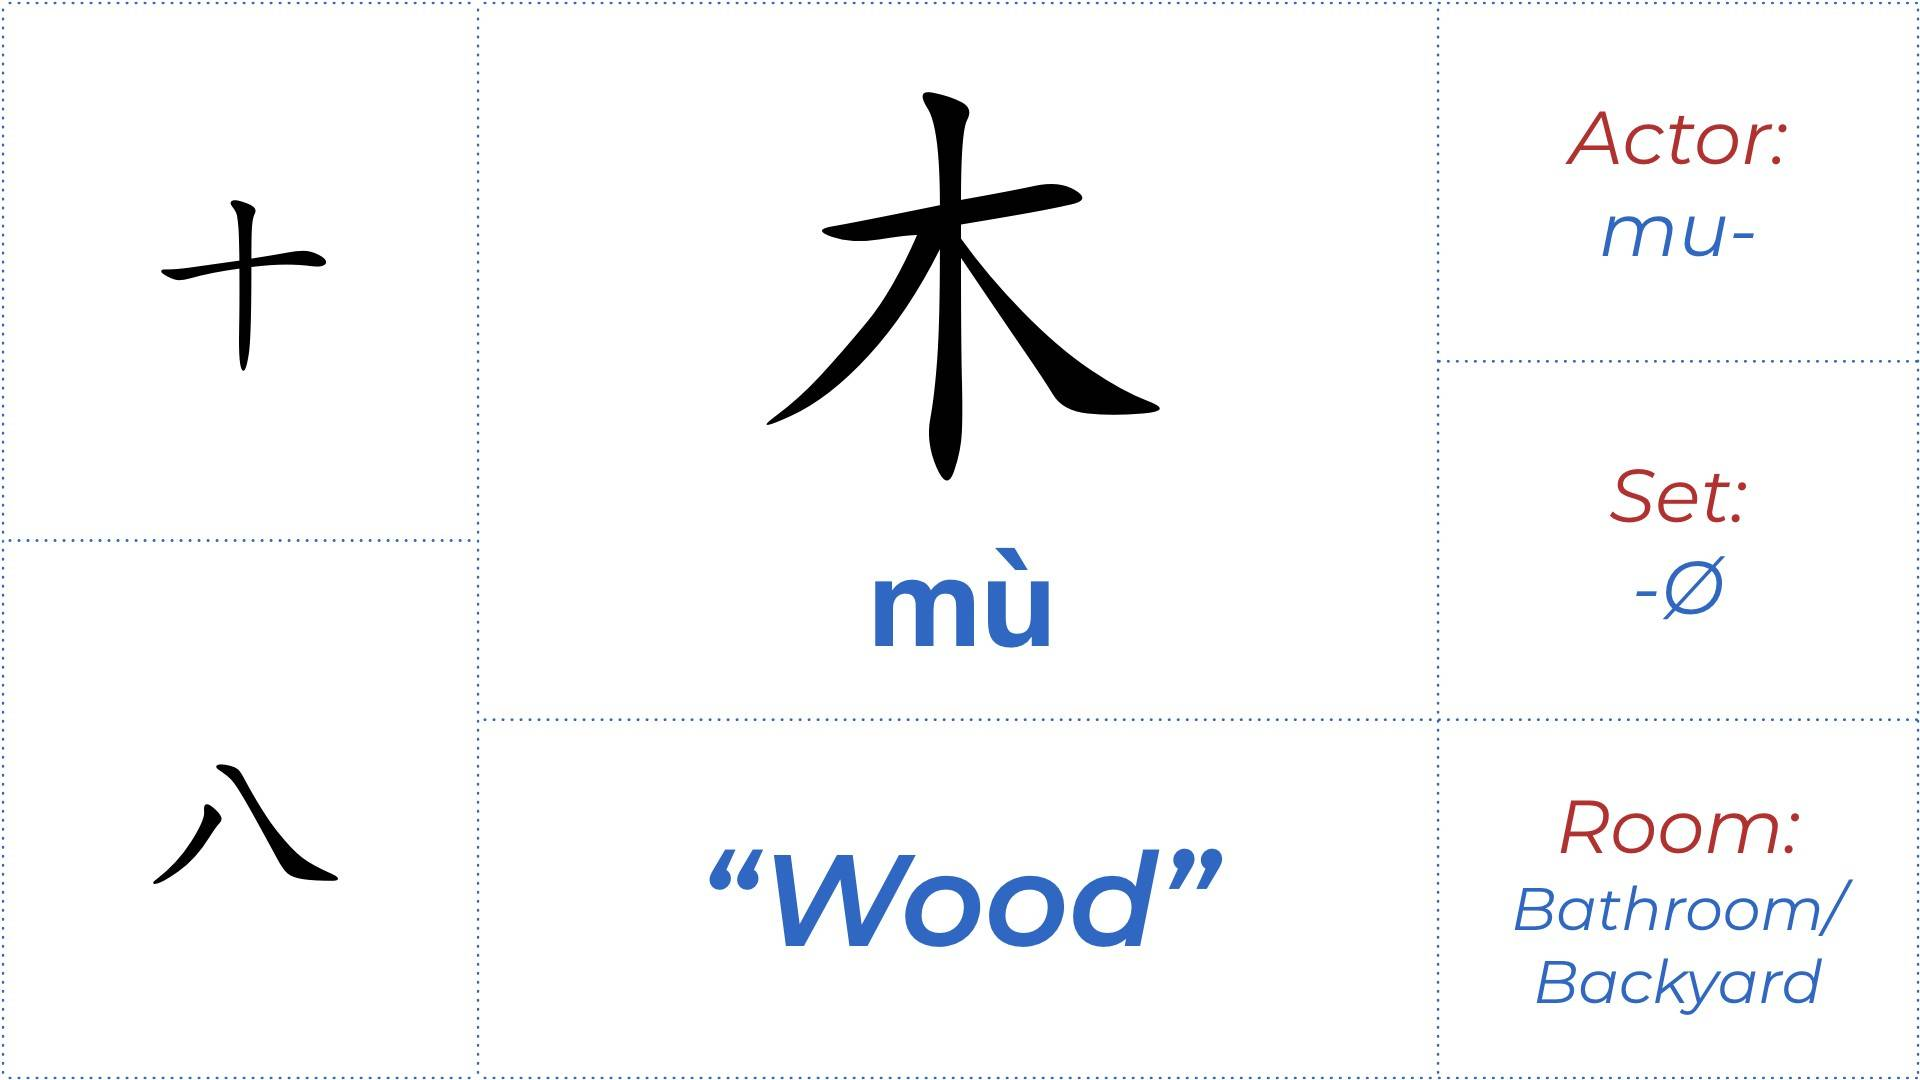 Chinese character 木